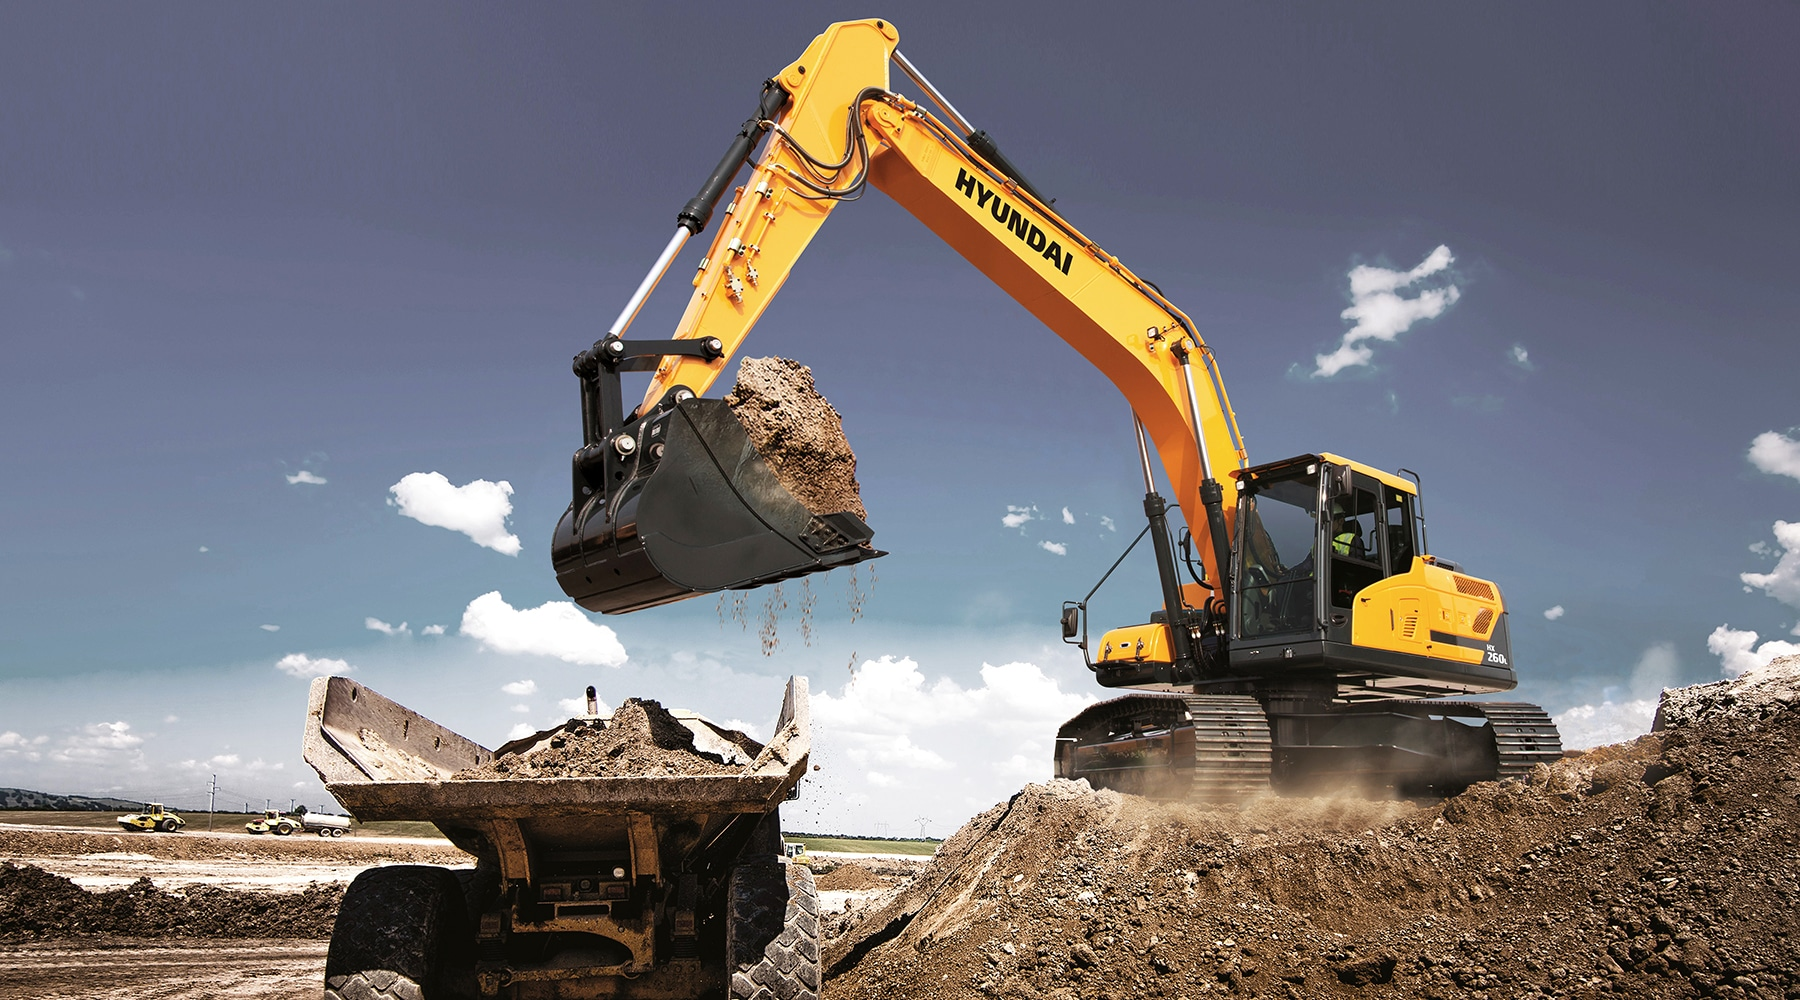 Hyundai Excavation Equipment